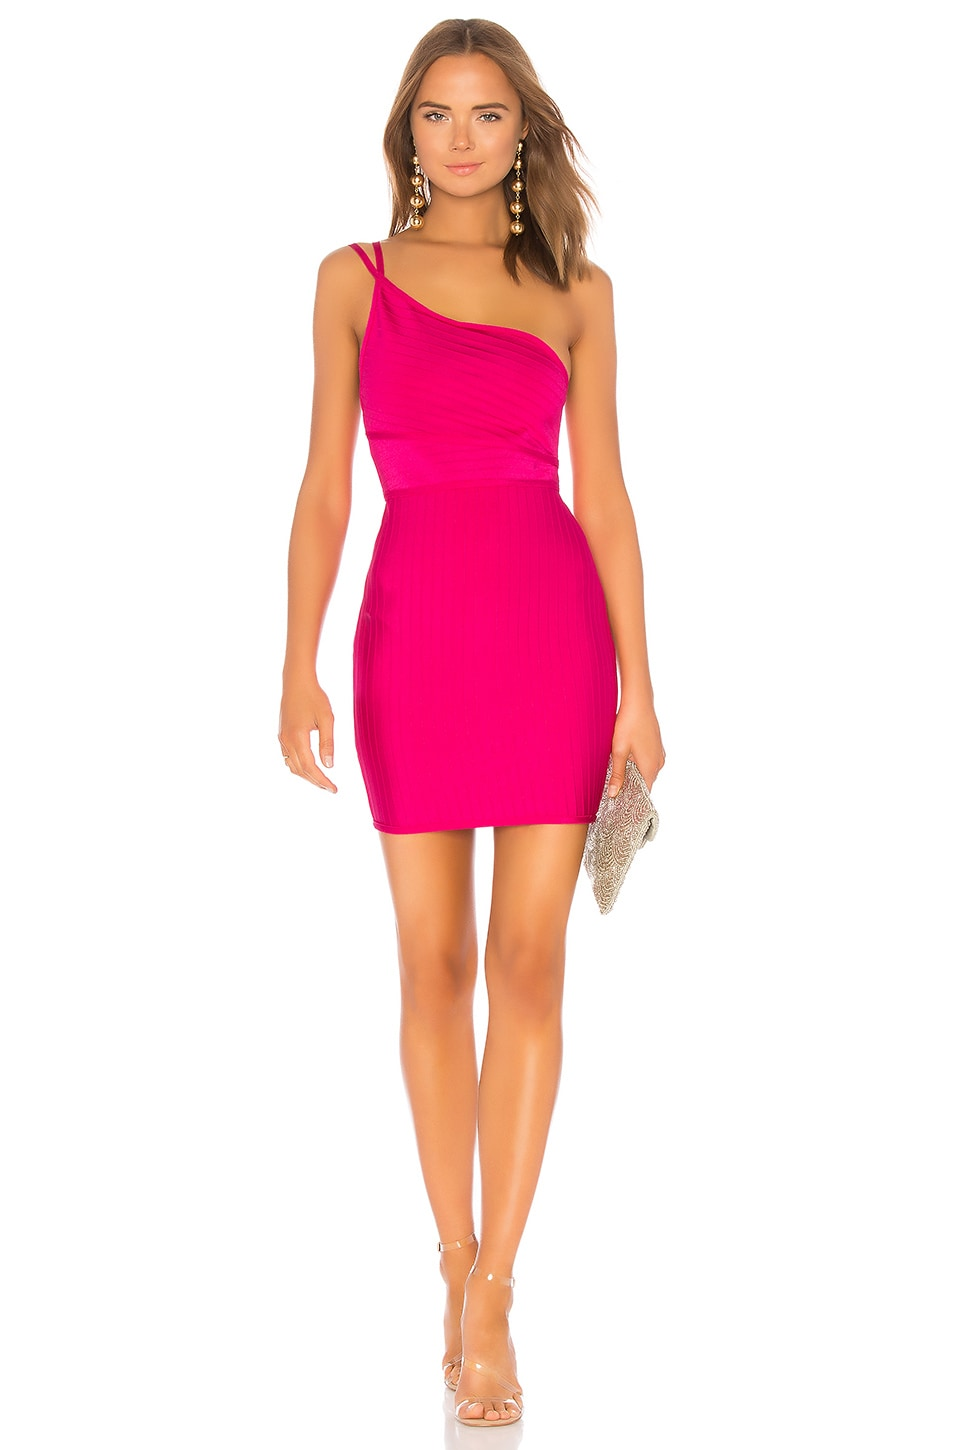 superdown Krystal Asymmetrical Bandage Dress in Hot Pink